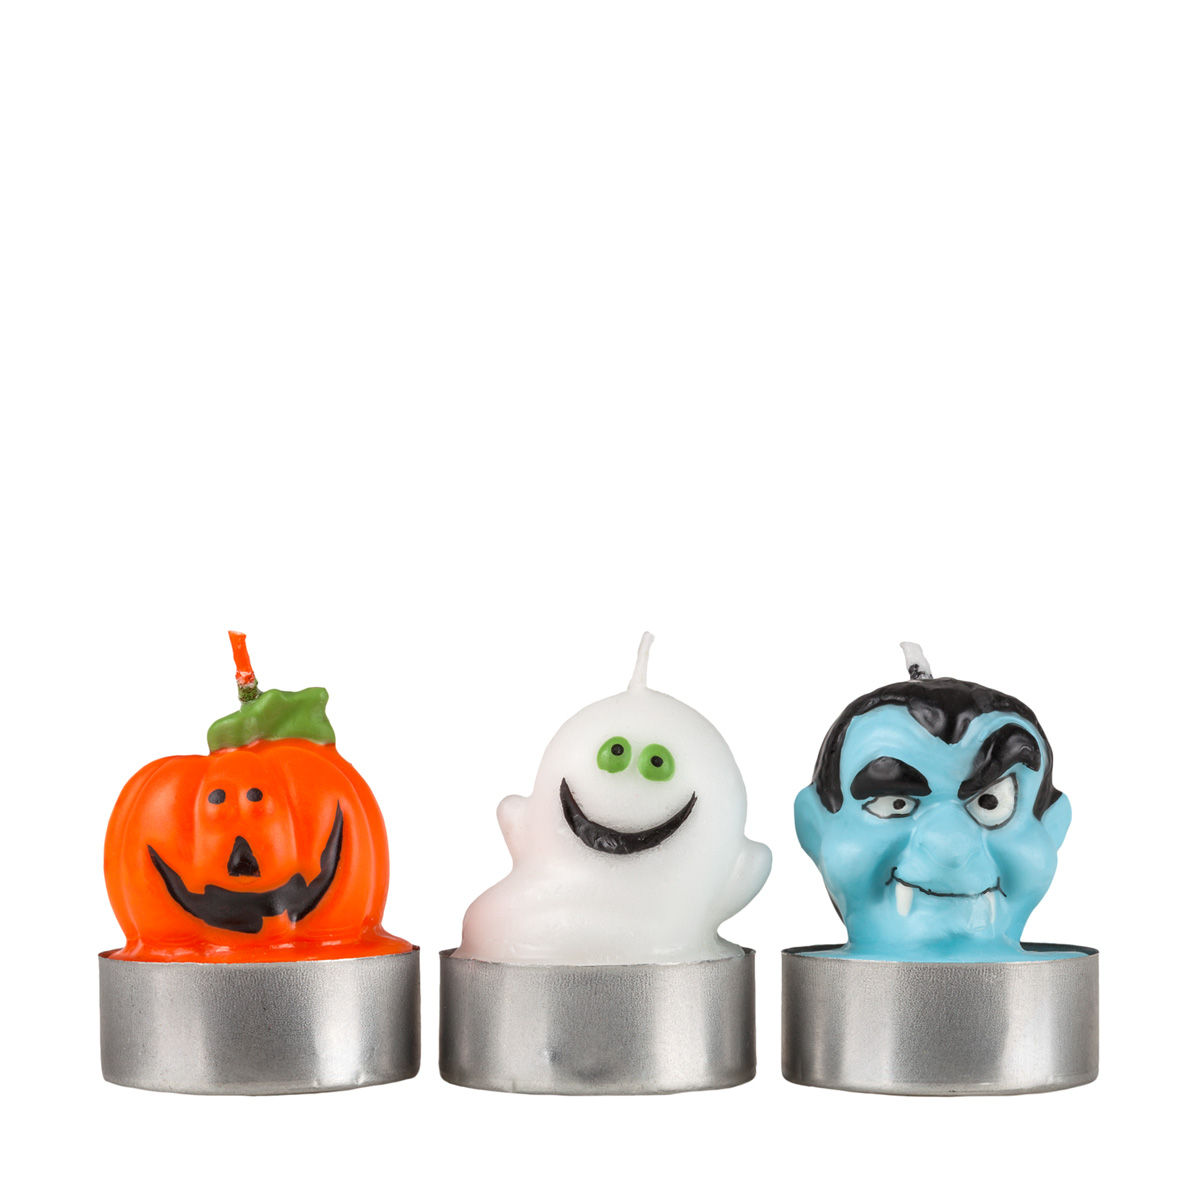 Halloween Figurine Candles - Ghost Pumpkin Dracula Candles